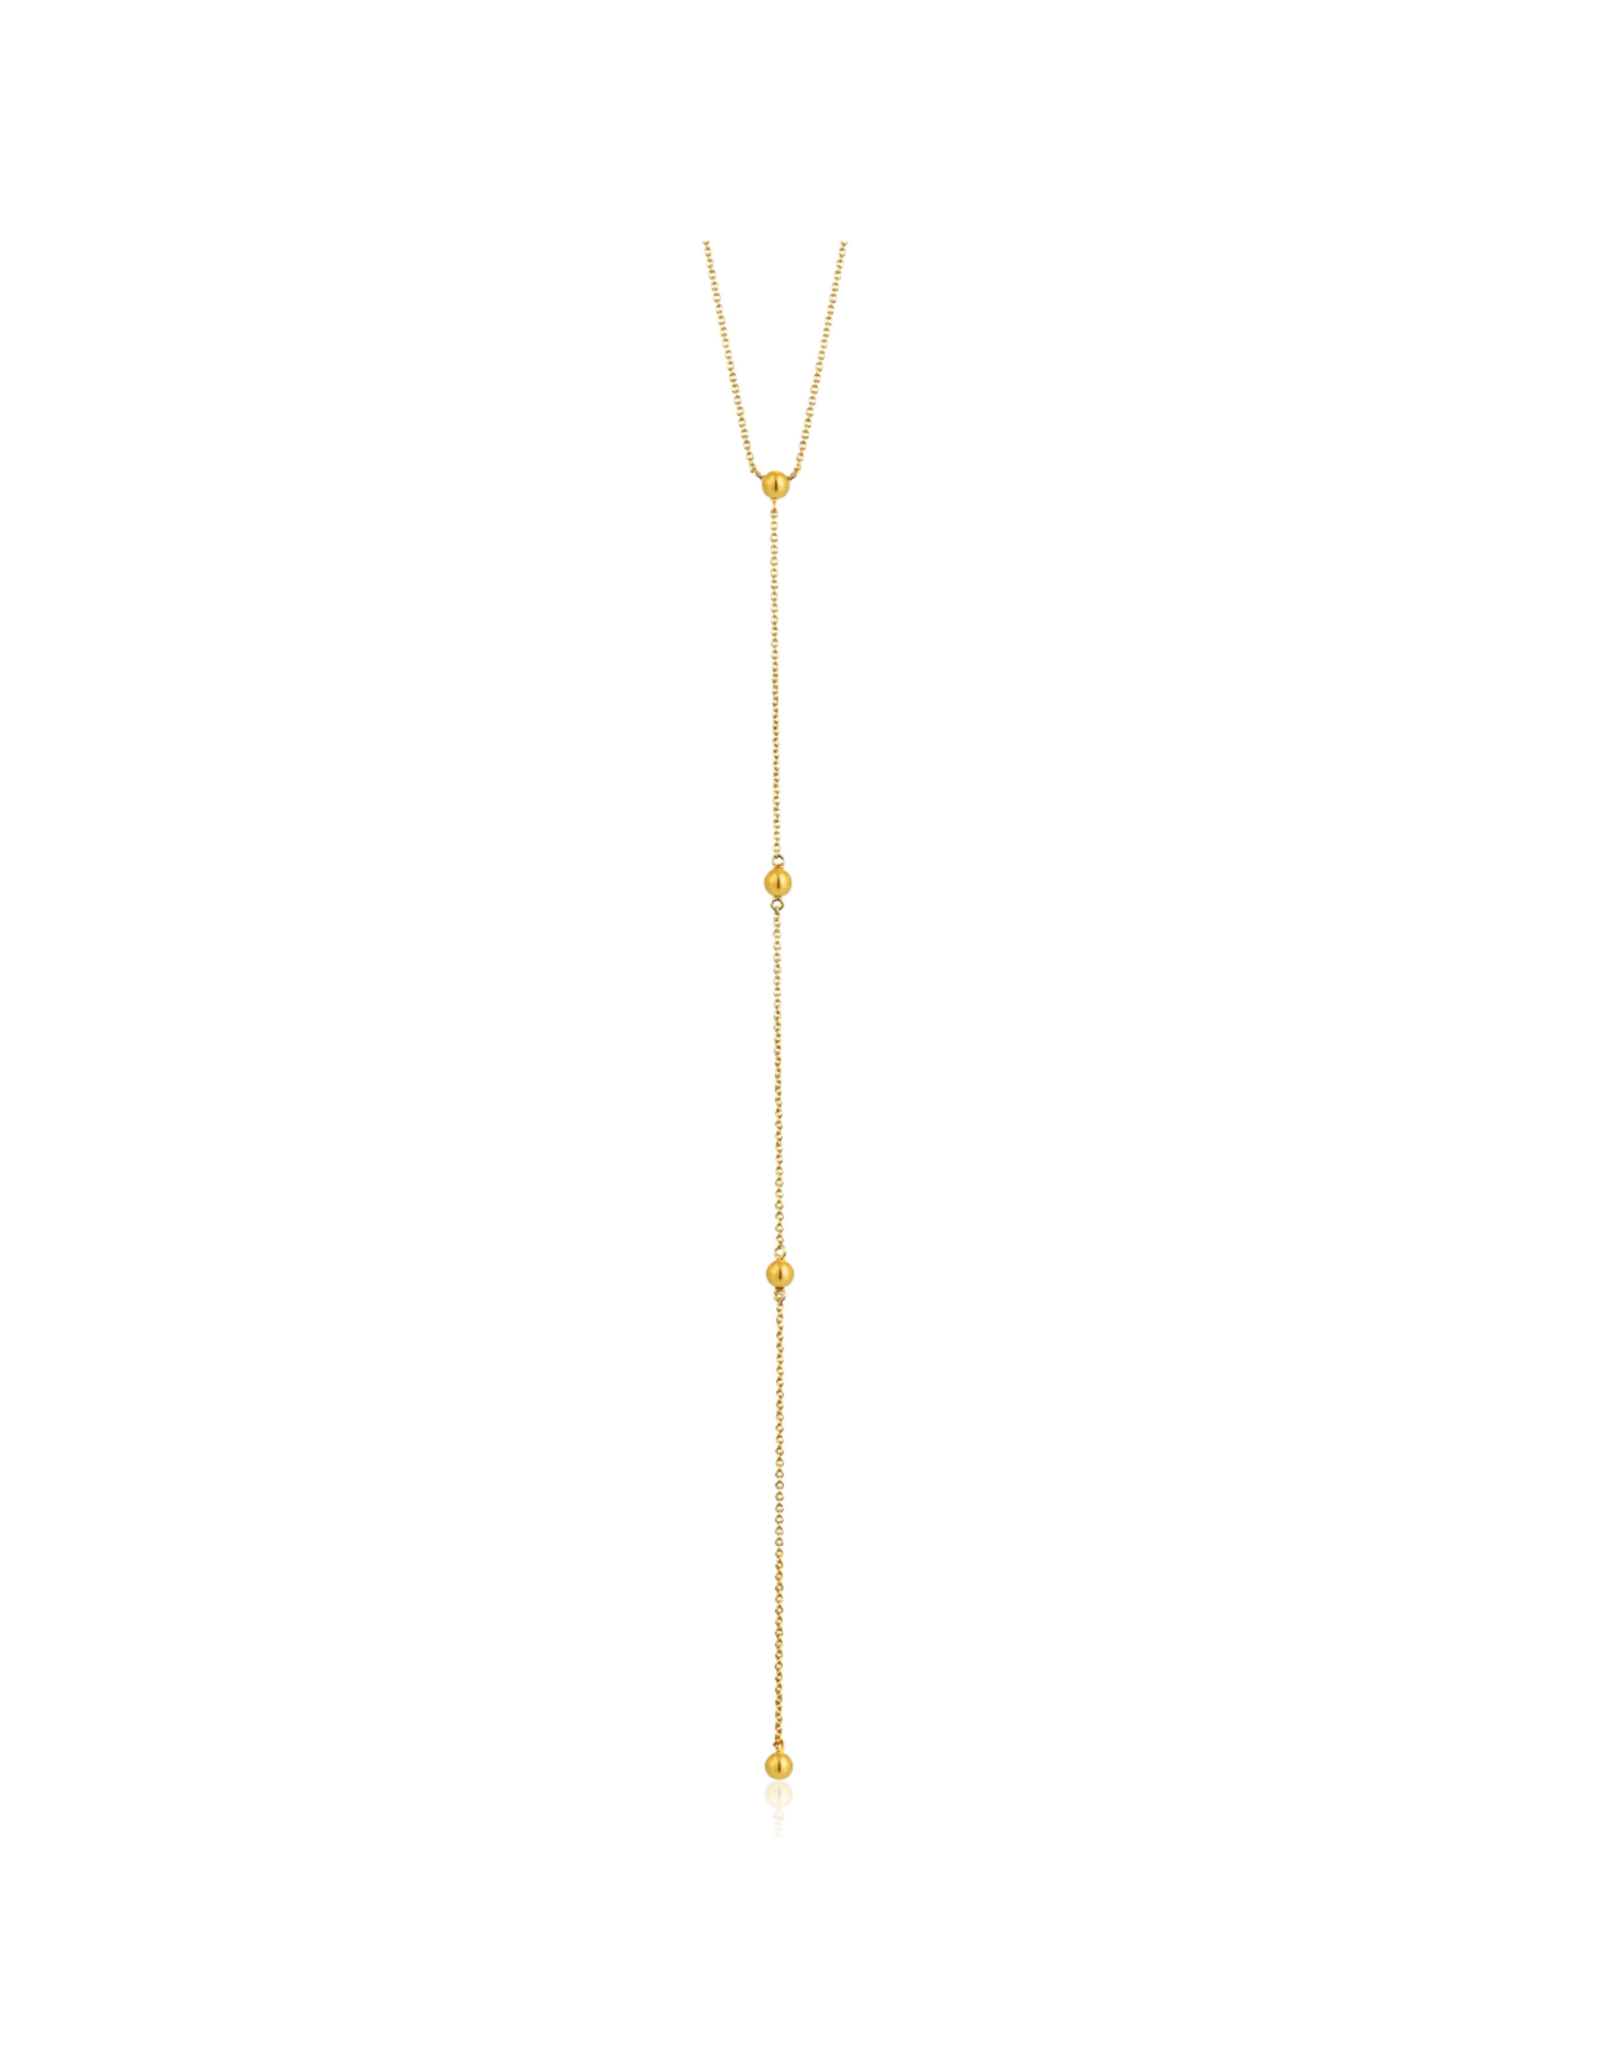 Modern Beaded Y Necklace, gold